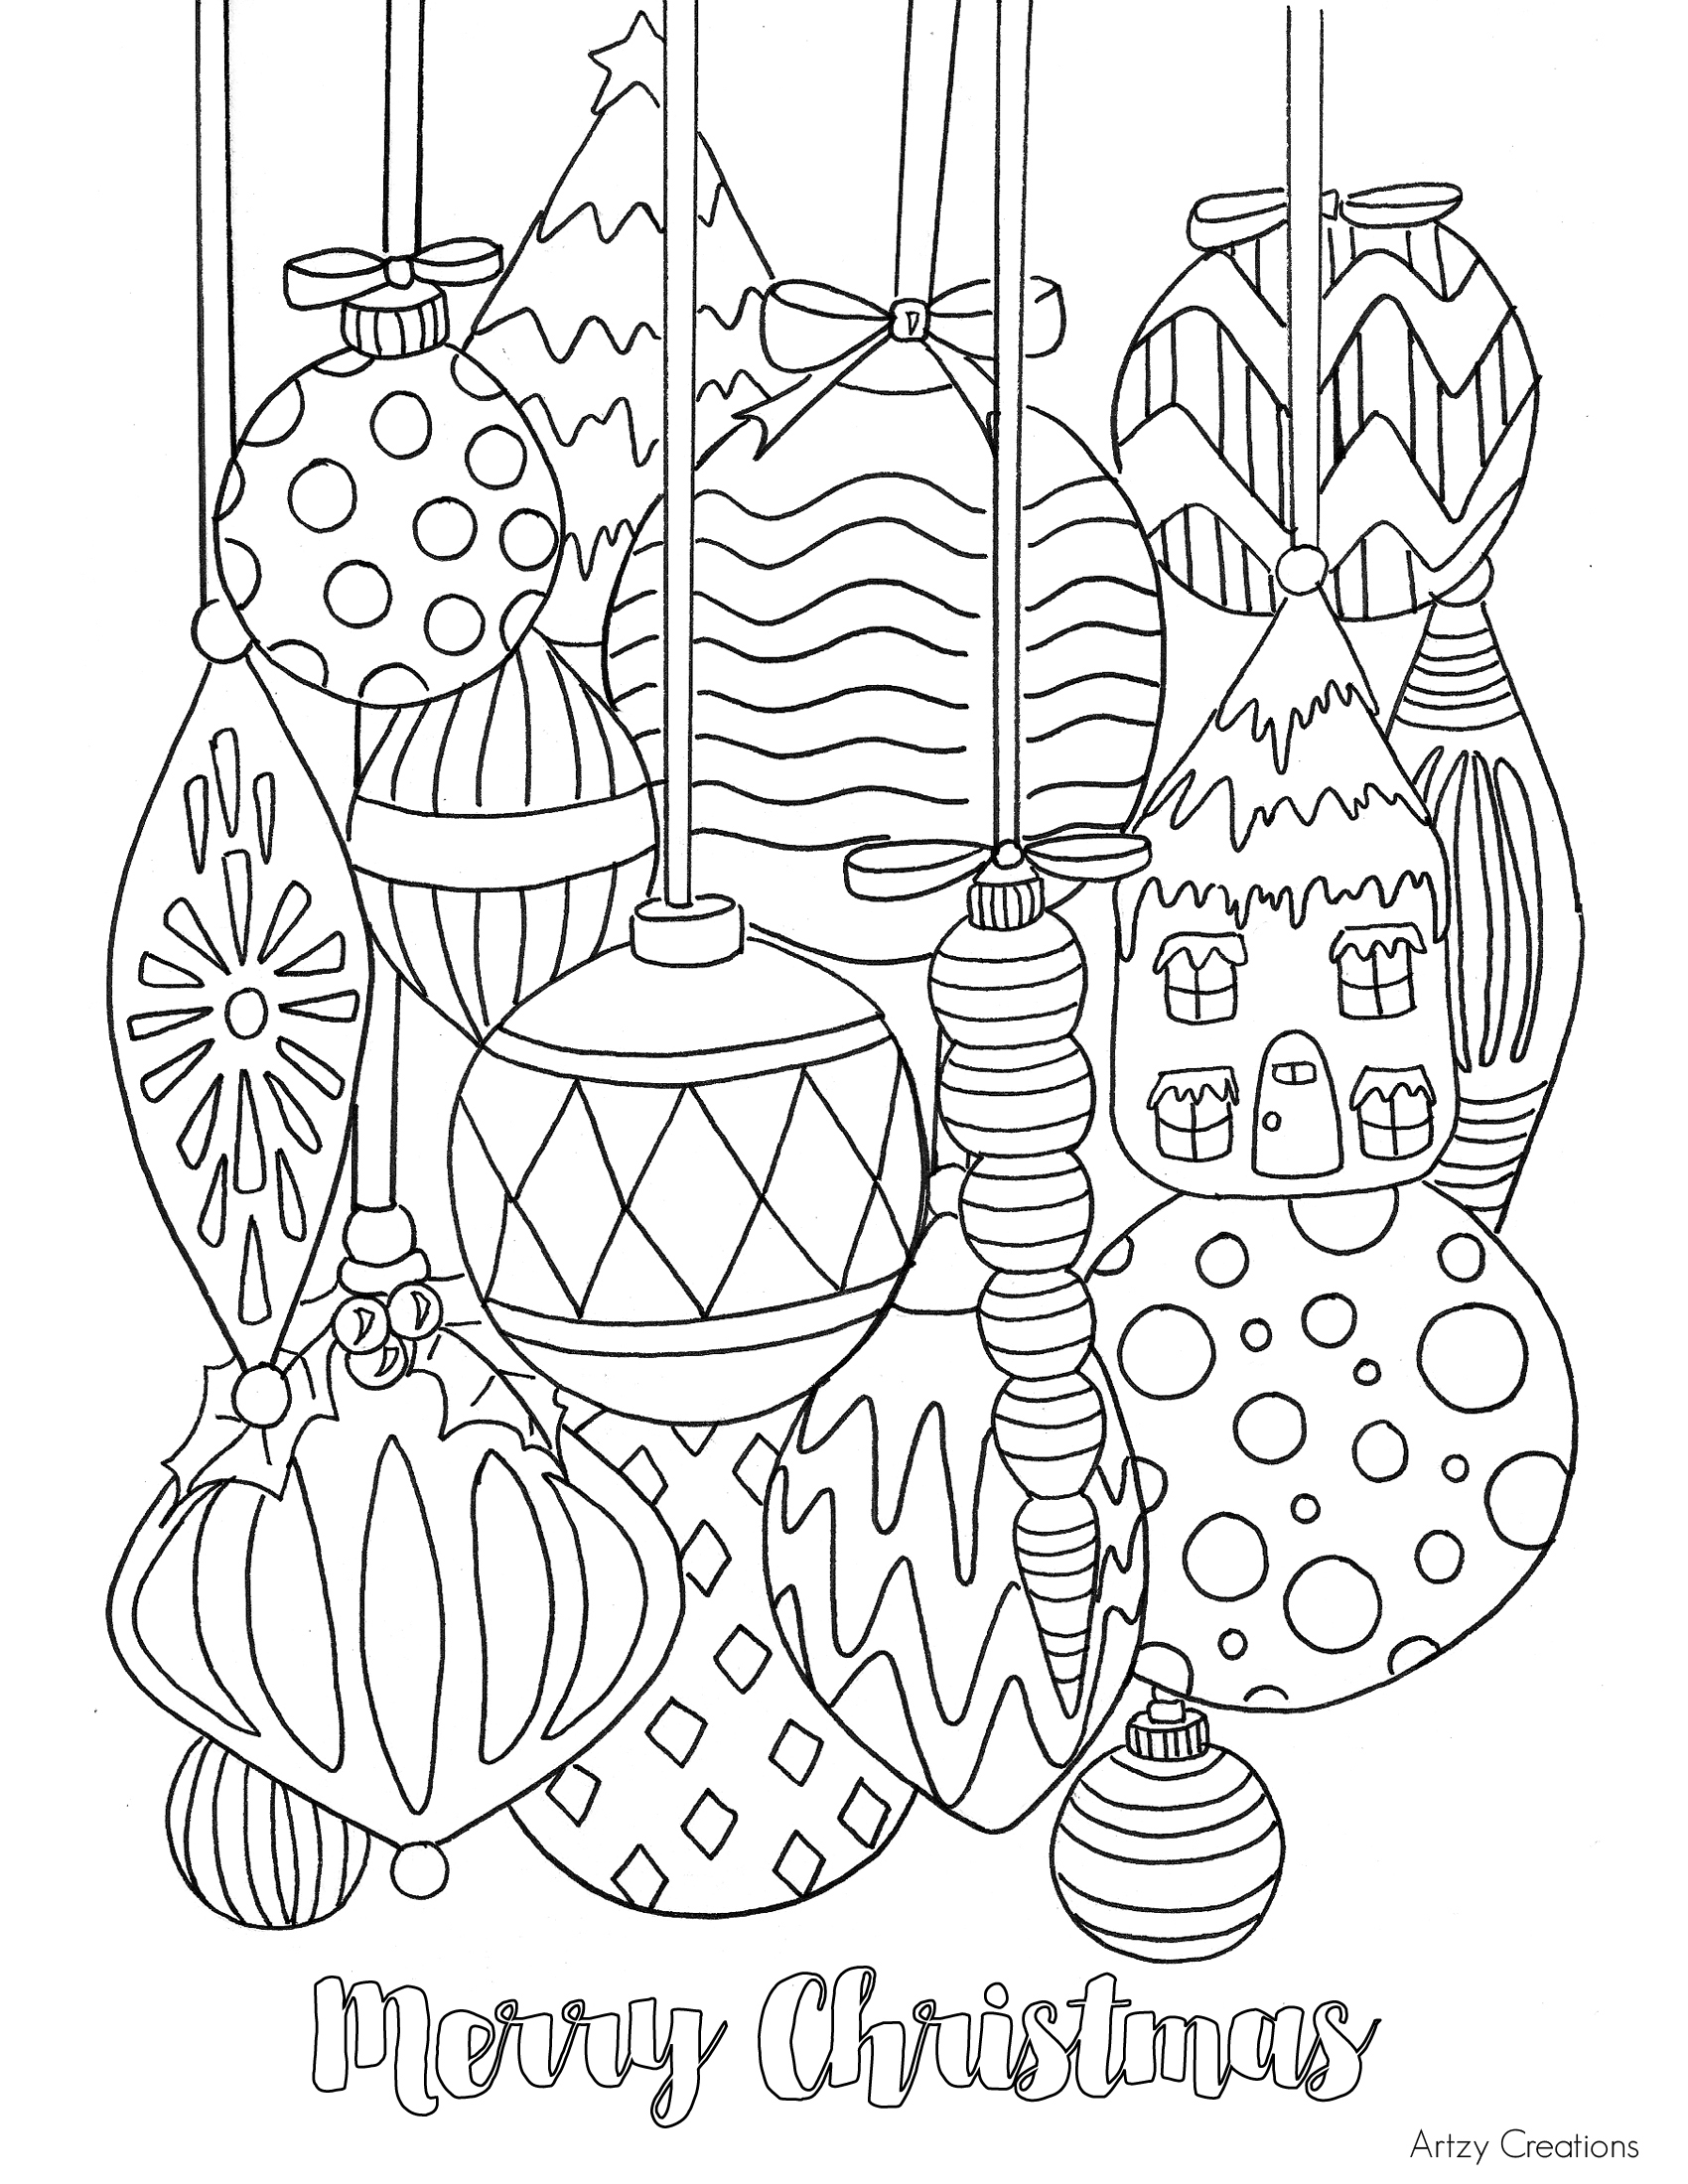 Christmas Coloring Pages Already Colored With For Adults Pdf Download Free Books